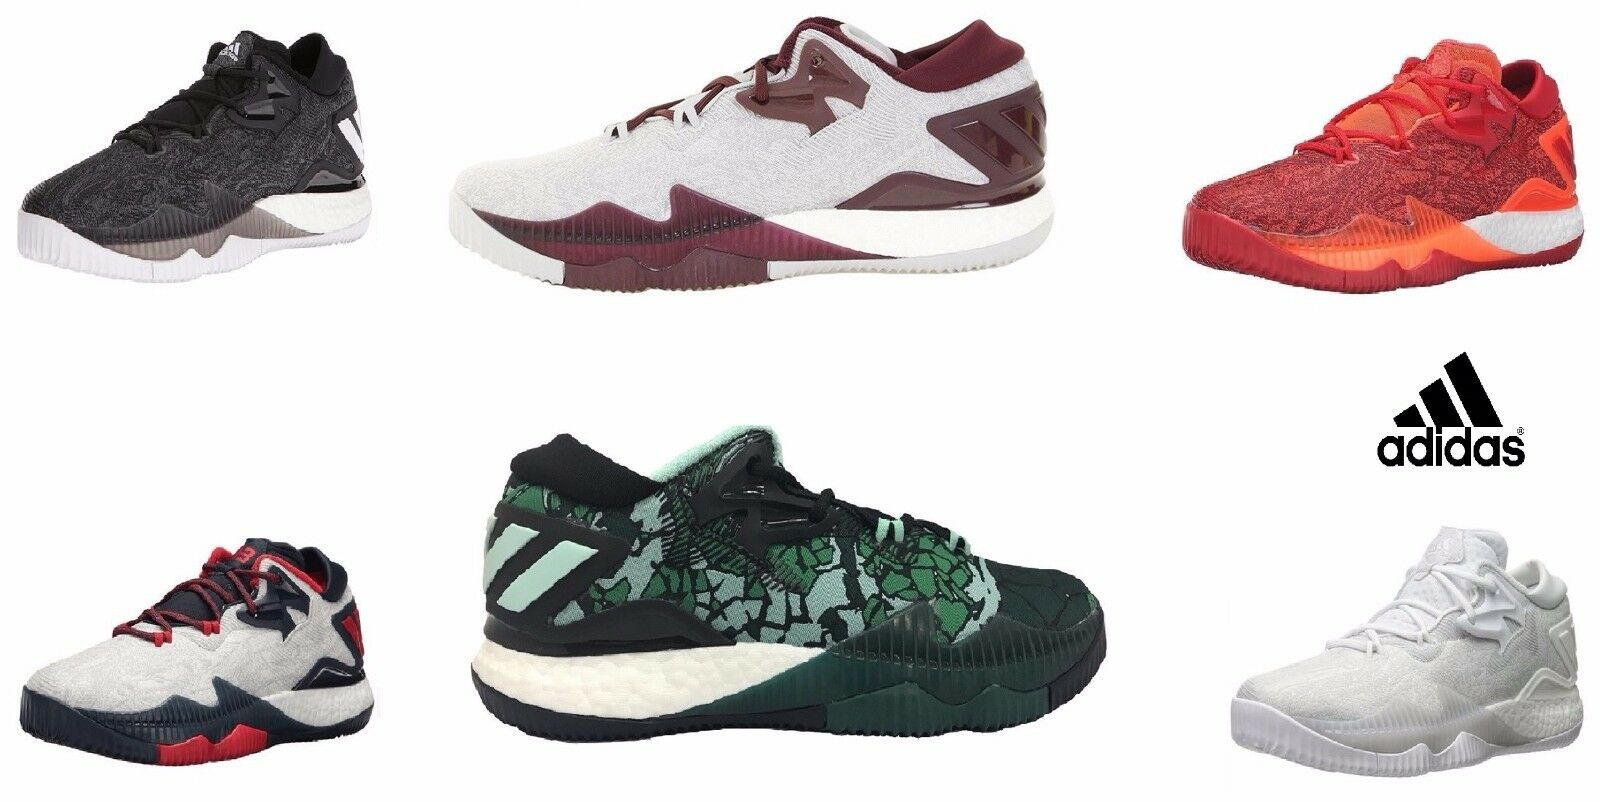 Adidas Men Vets Athletic SM CL Crazylight Boost Low 2016 Vets Men Day Basketball Shoes 4eef01